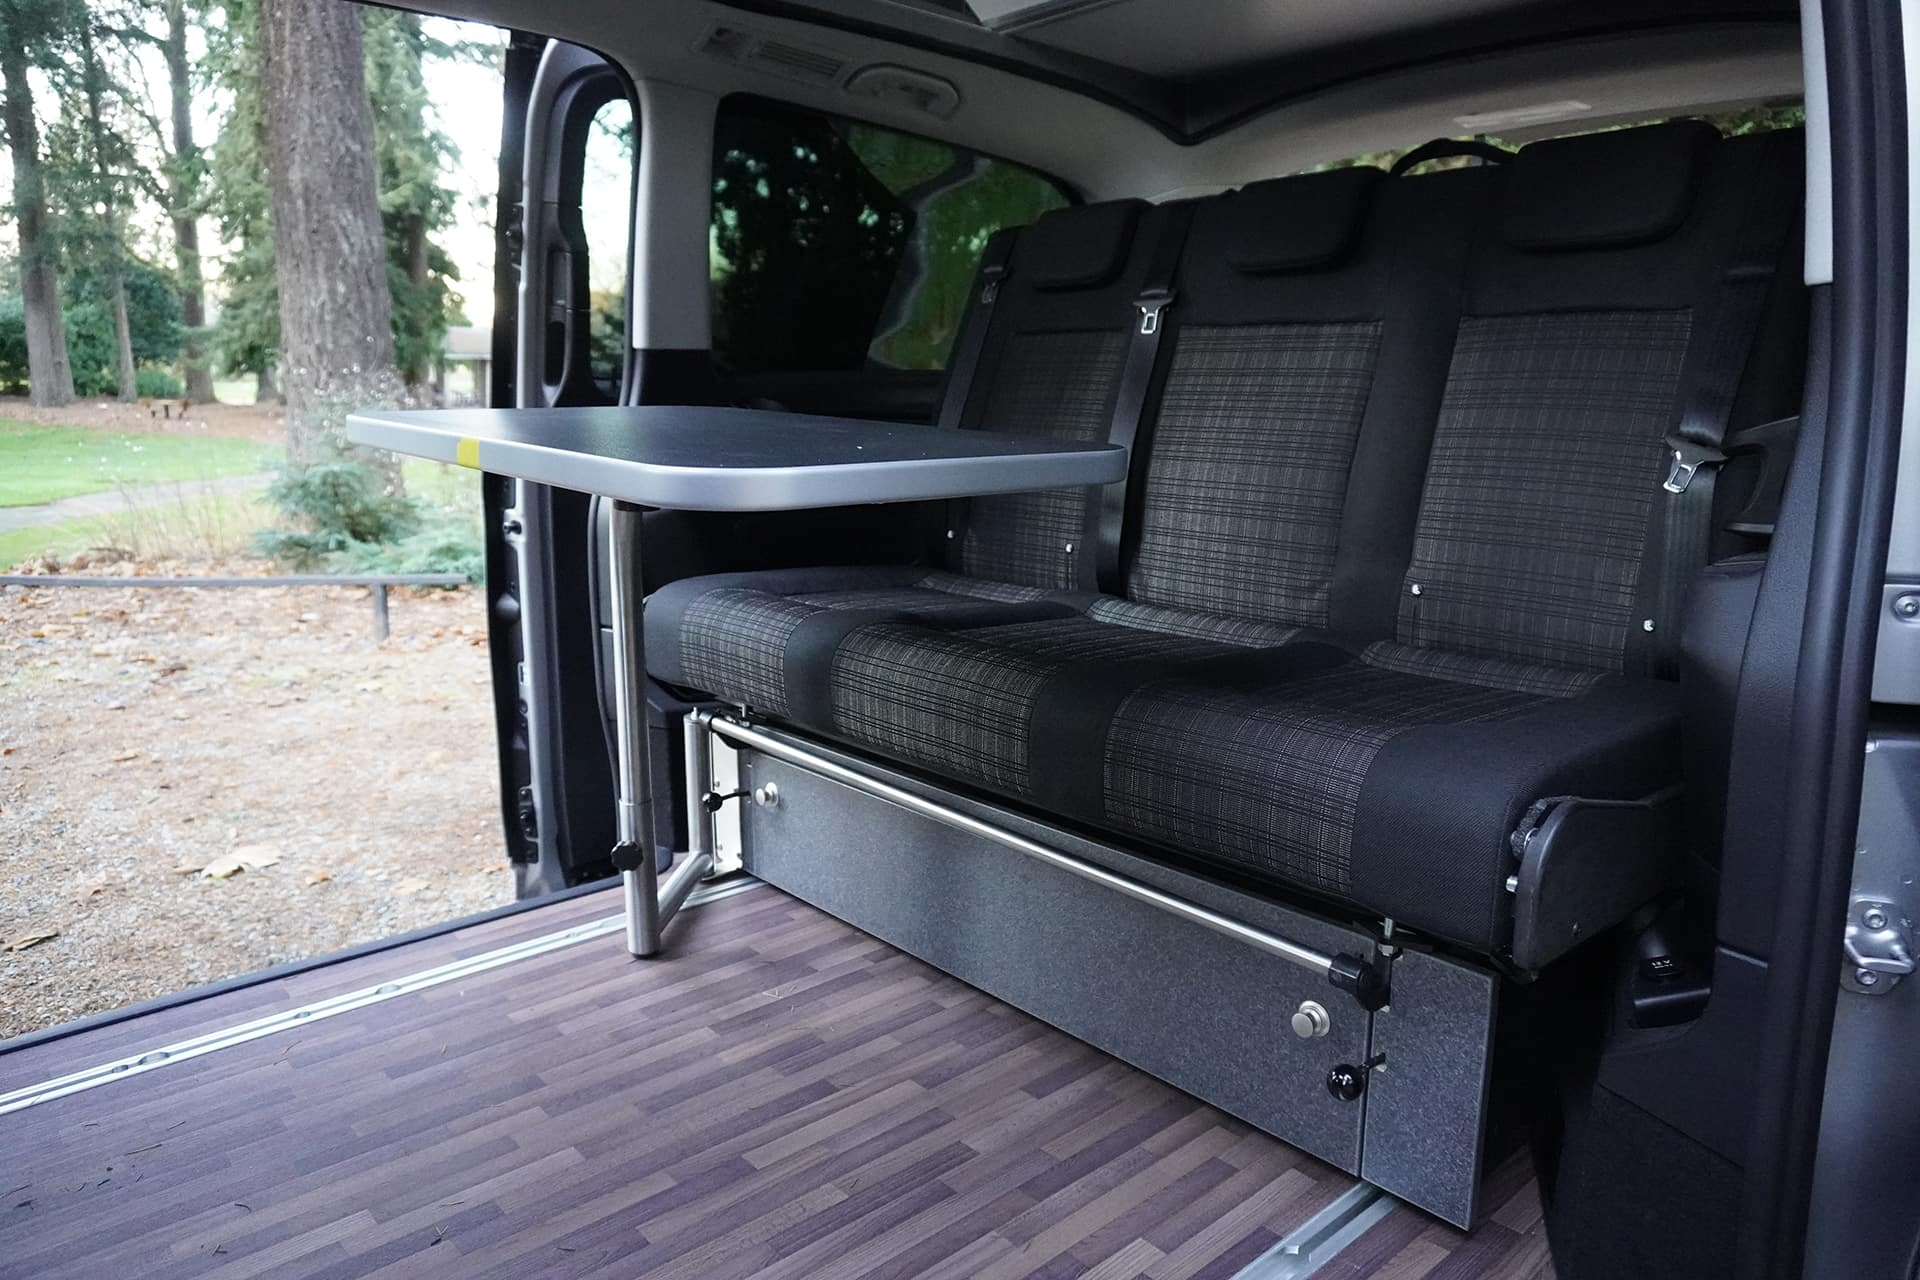 table setup on 2019 metris campervan backroad